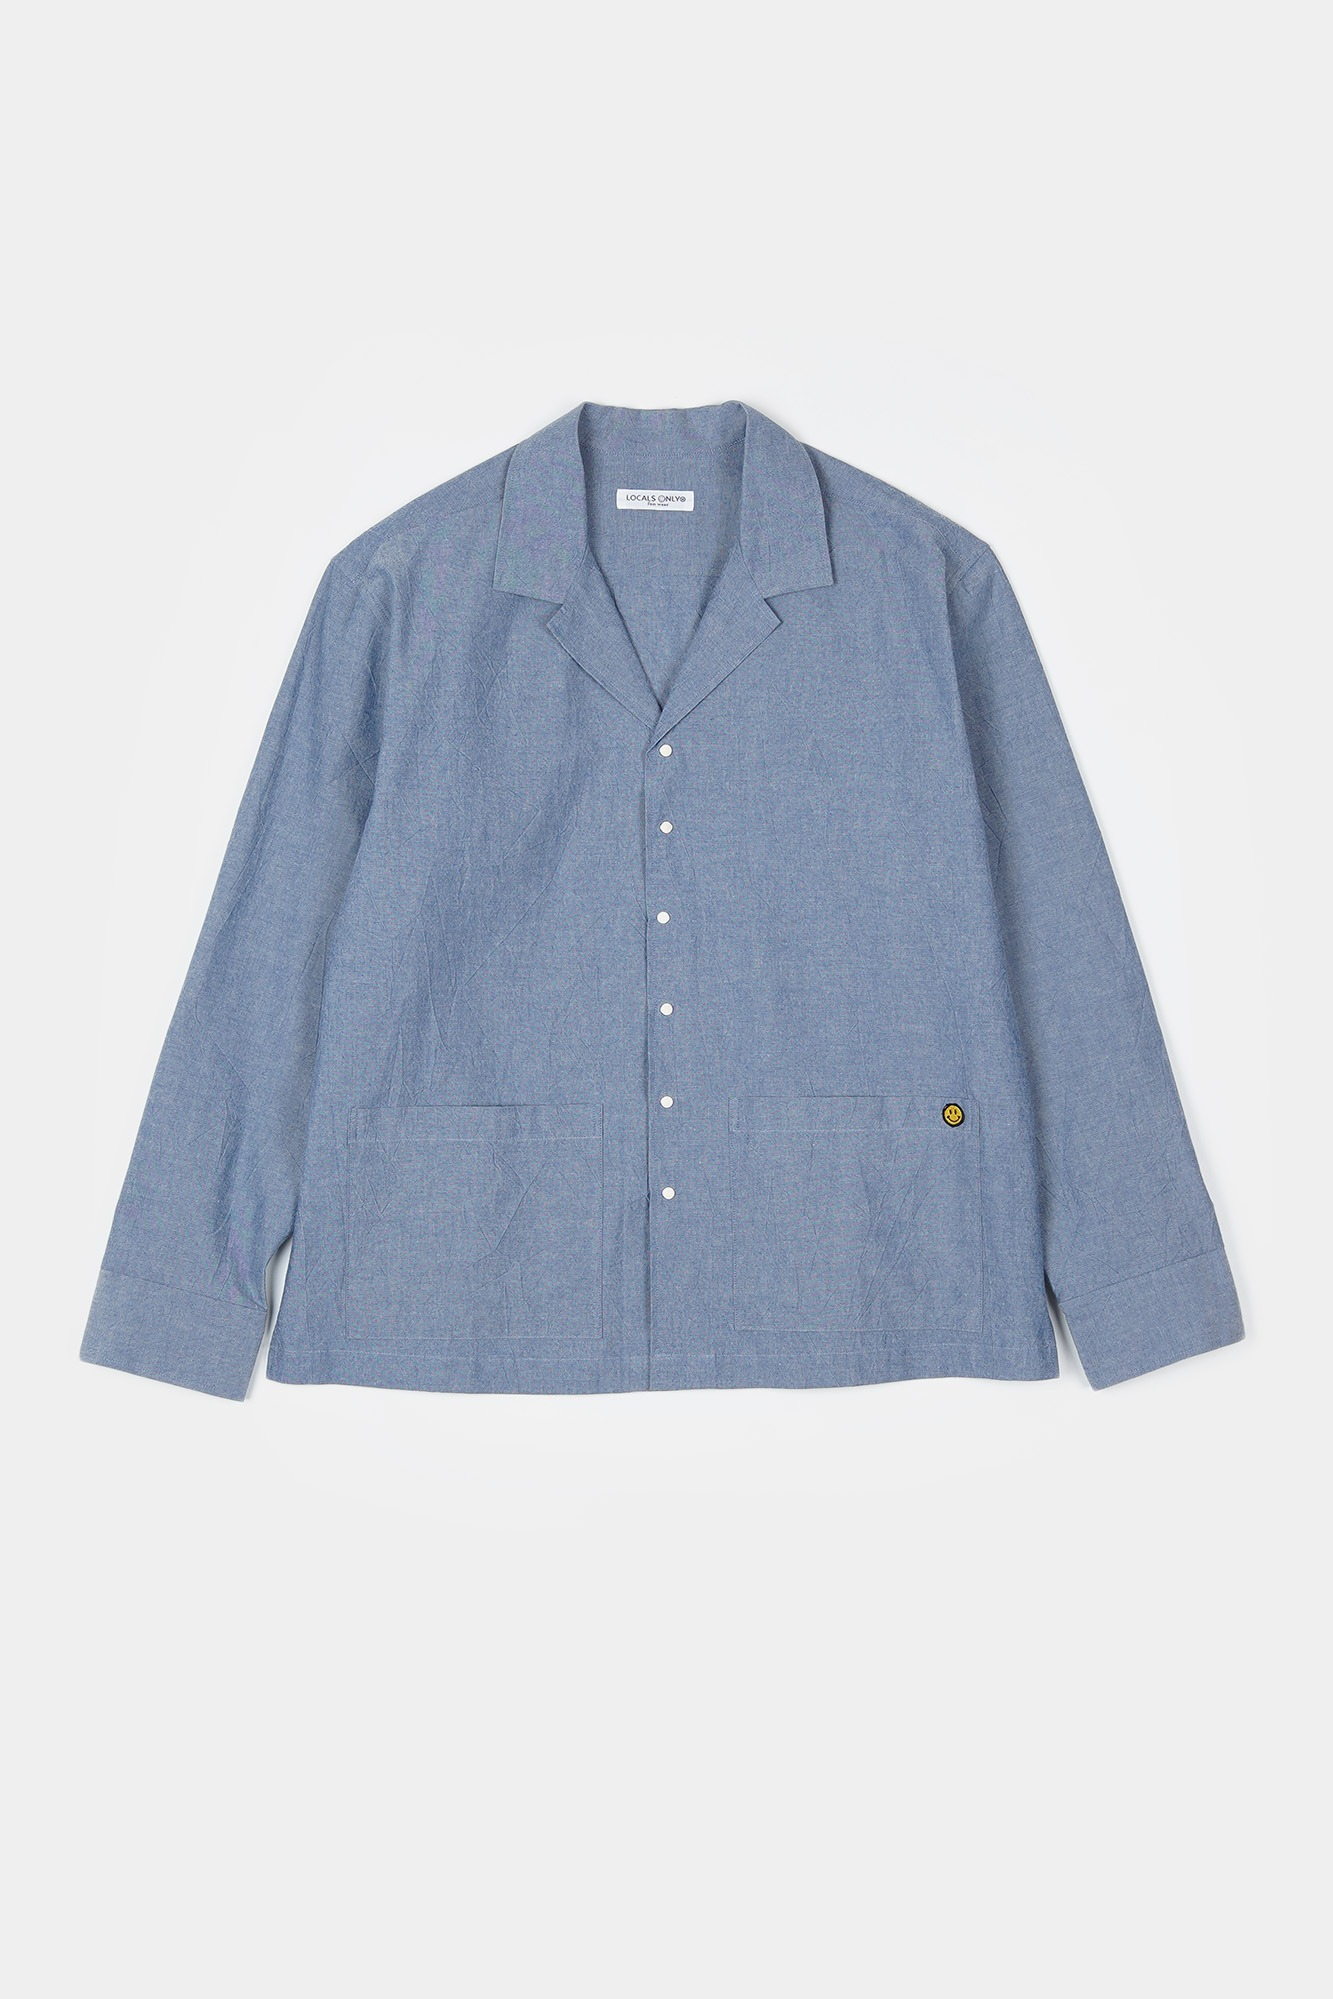 "LOCALS ONLY Chambray Open Collar Shirts Jacket ""Indigo"""